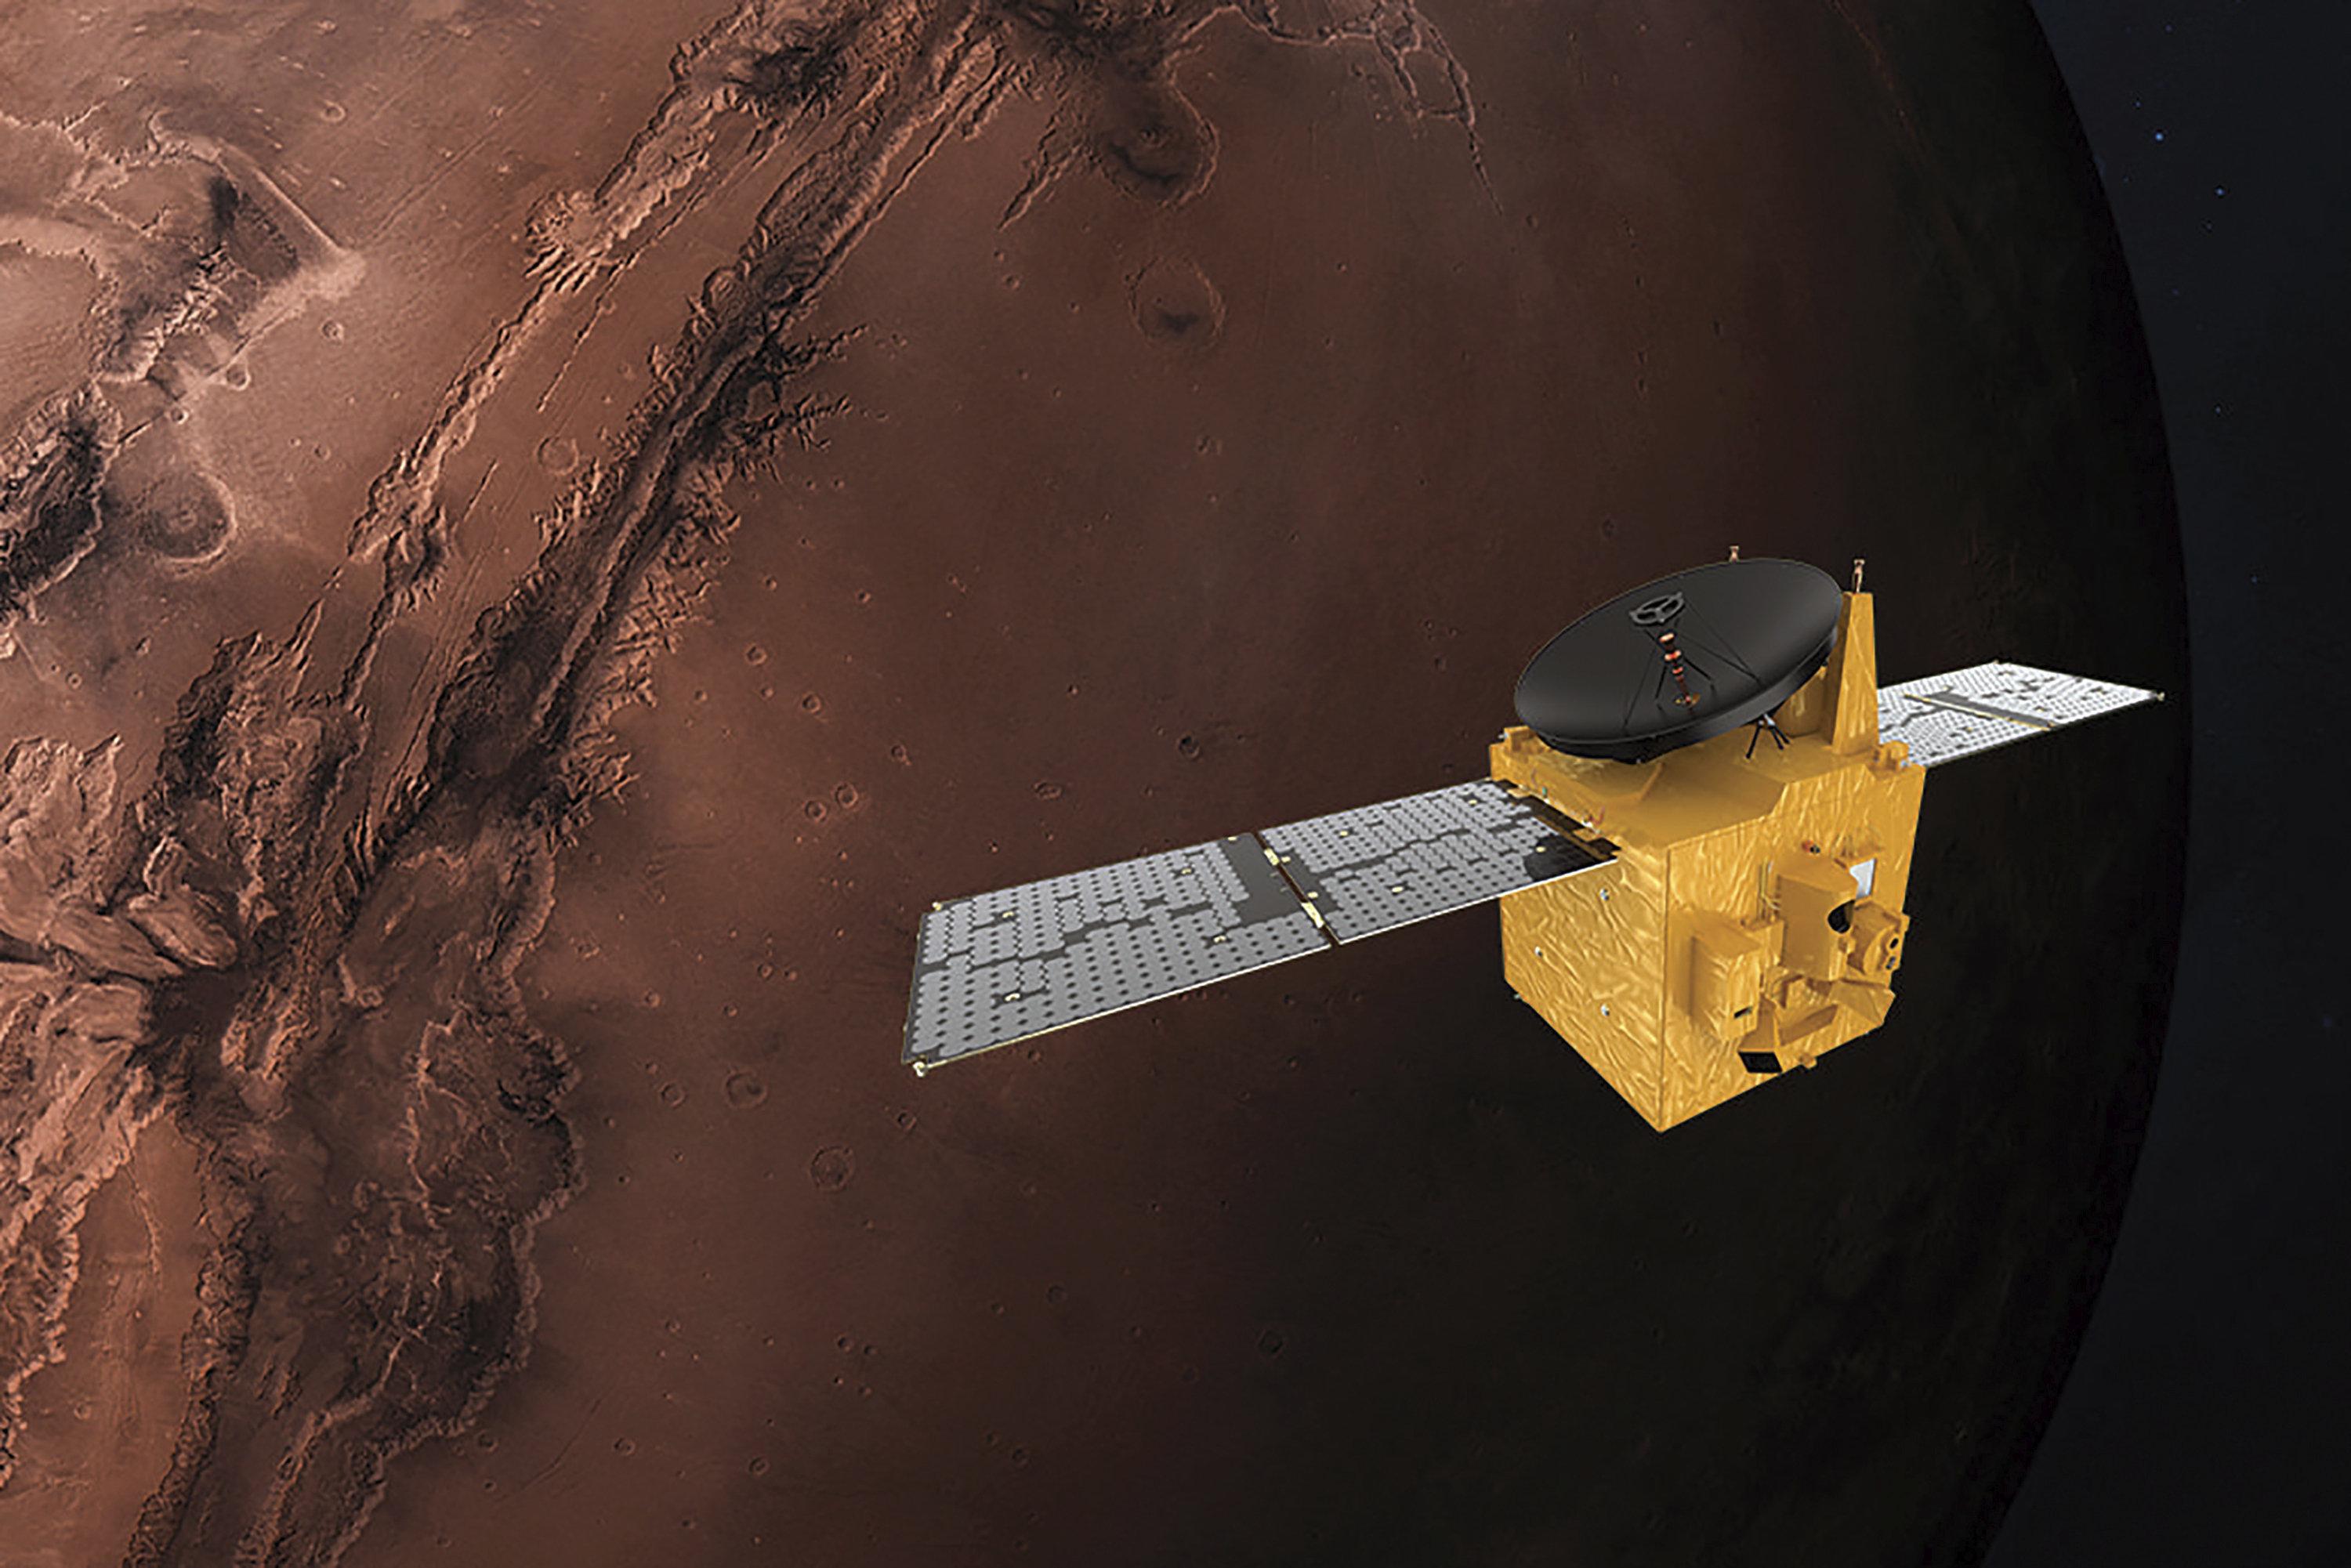 The probe is aiming to enter Mars's orbit on February 9